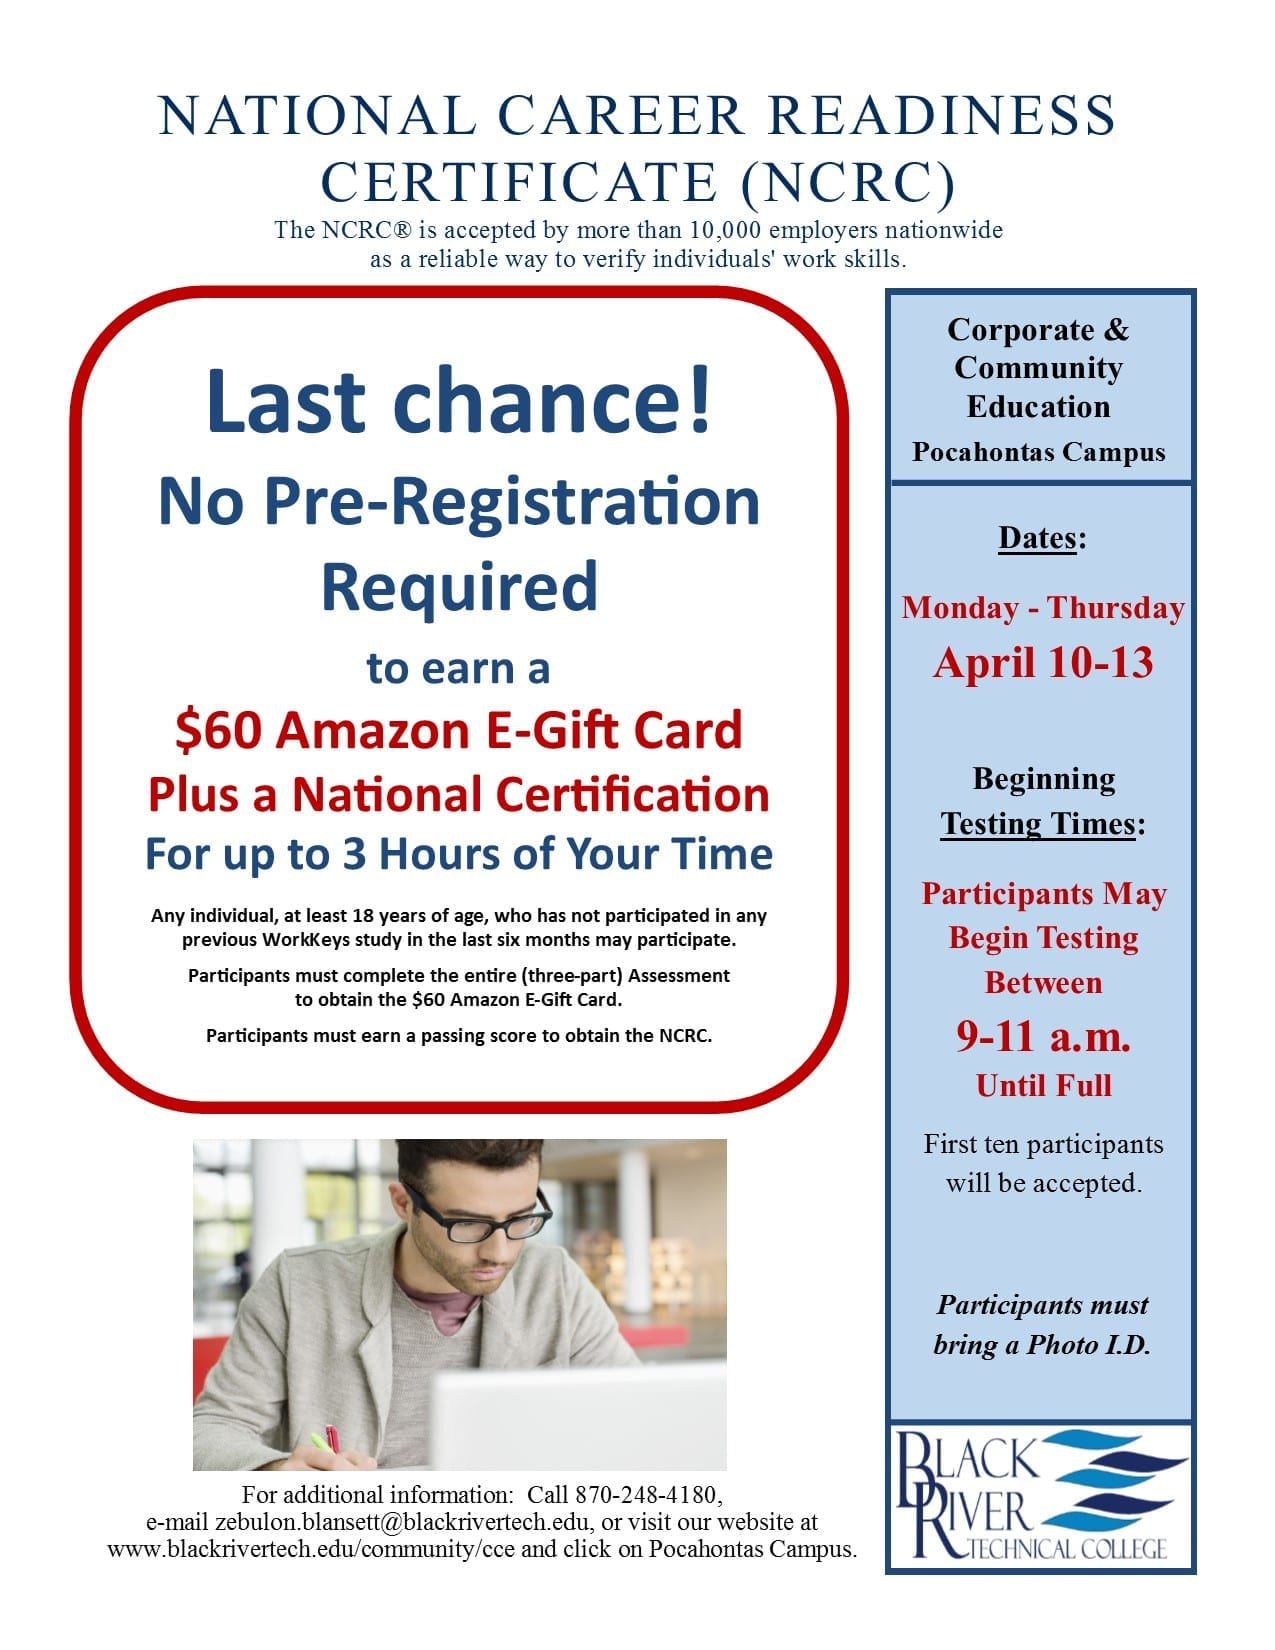 certificate readiness career national college ncrc